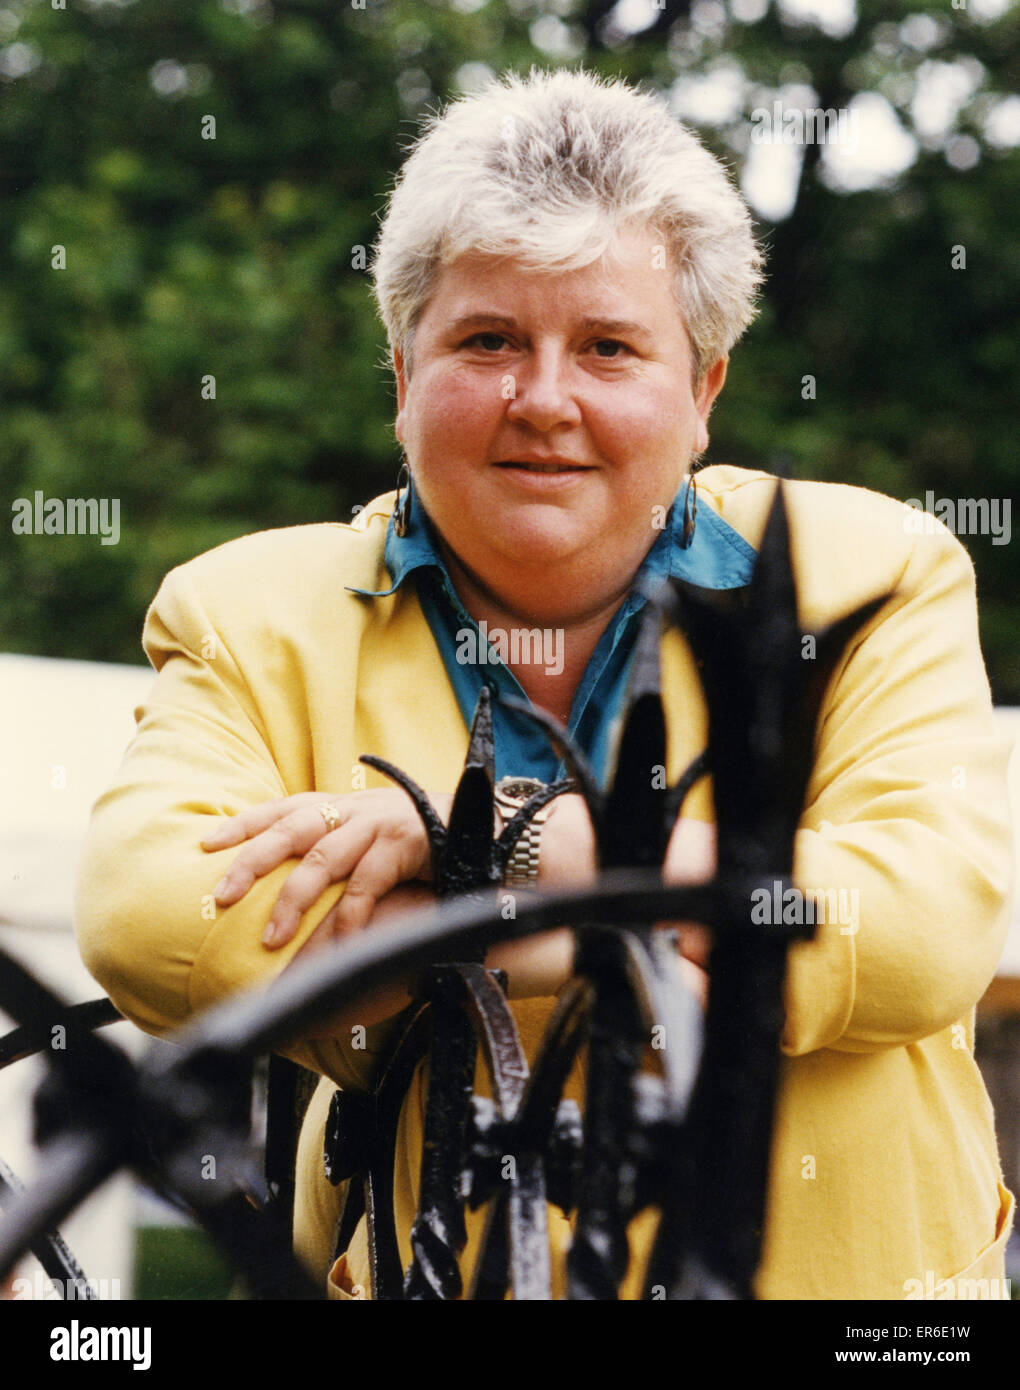 Val McDermid, Author, 26th April 1994. Former Sunday People Journalist. Pictured at Edinburgh Book Festival. - Stock Image